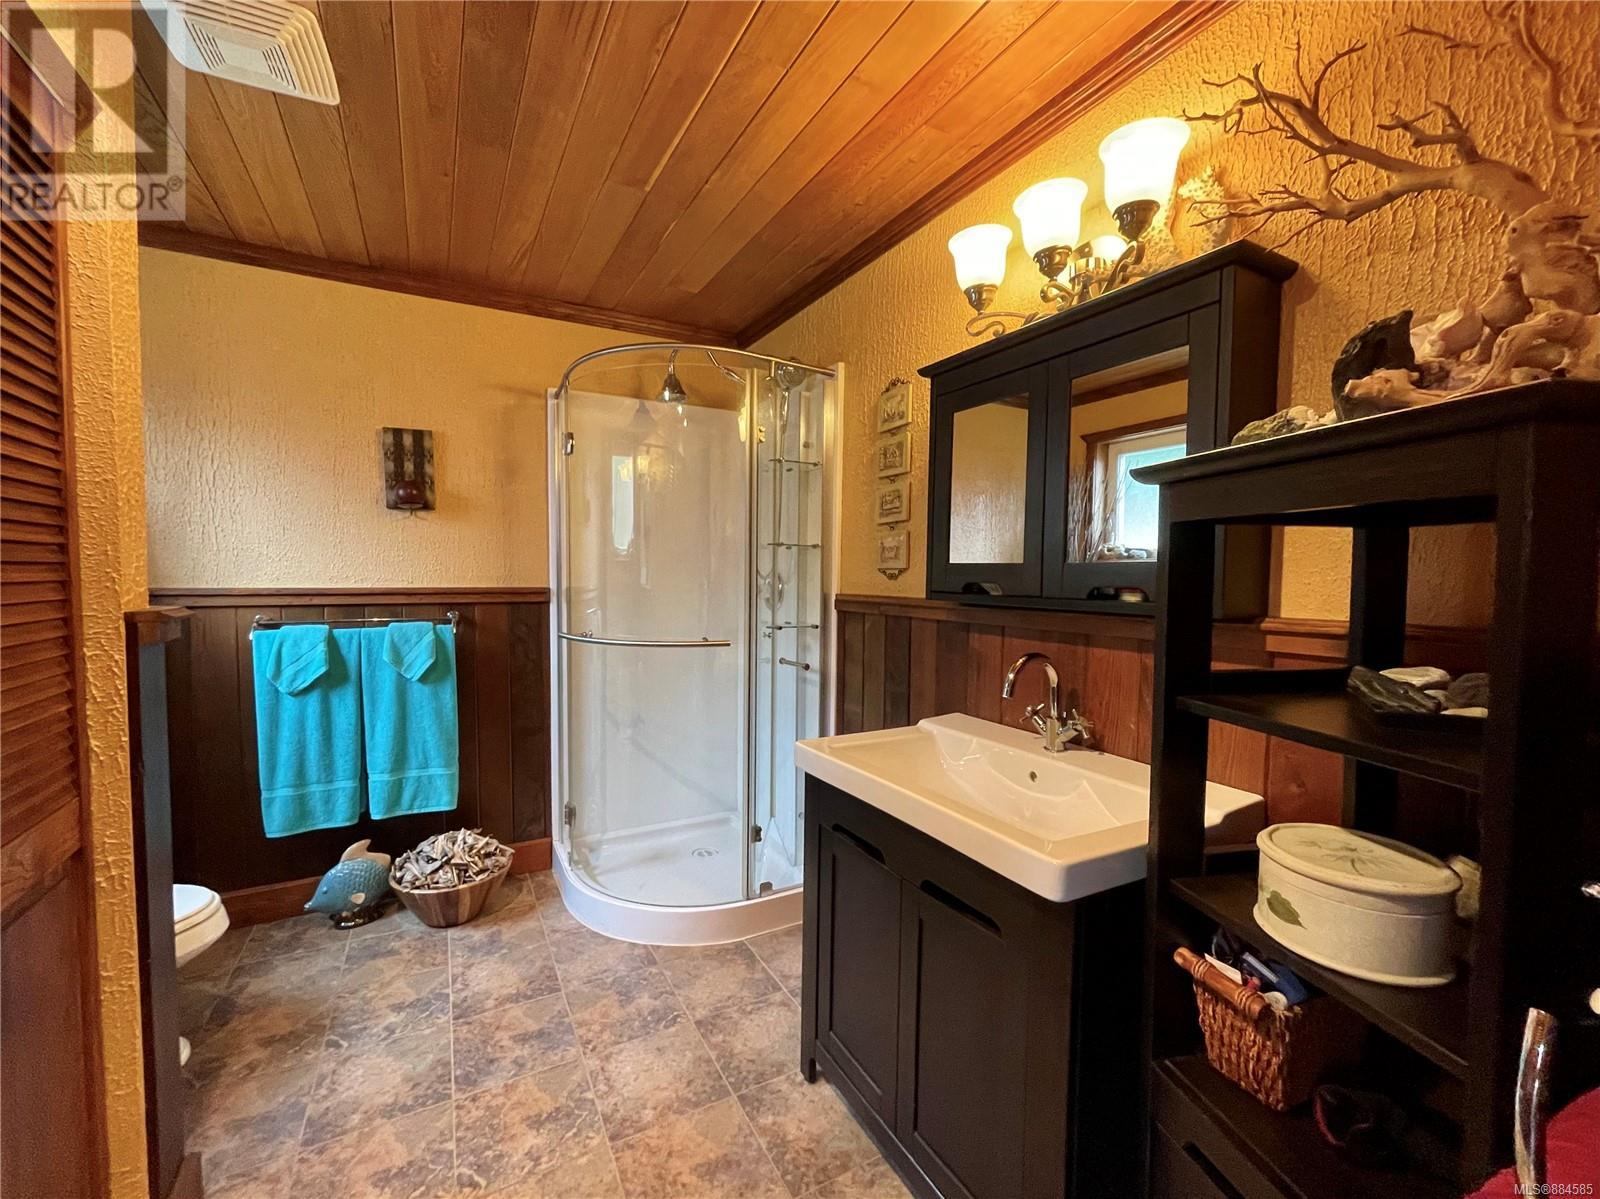 MLS® #884585 - Ucluelet House For sale Image #11